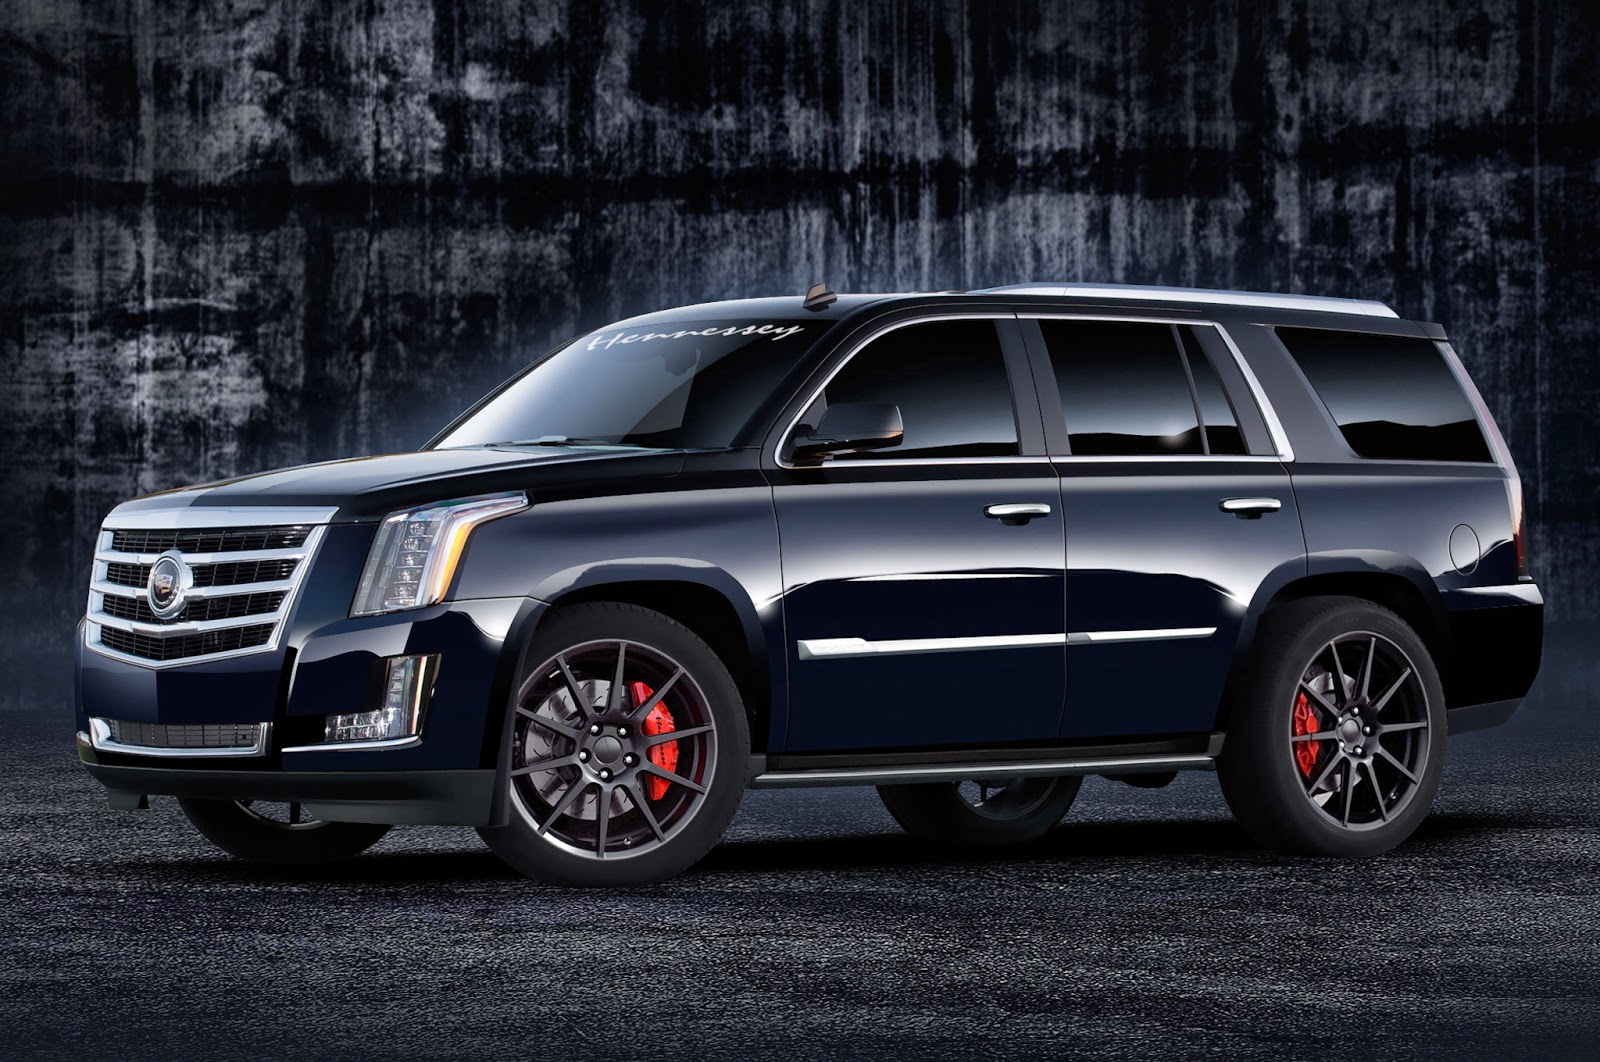 2015 cadillac escalade release date car review and modification. Cars Review. Best American Auto & Cars Review